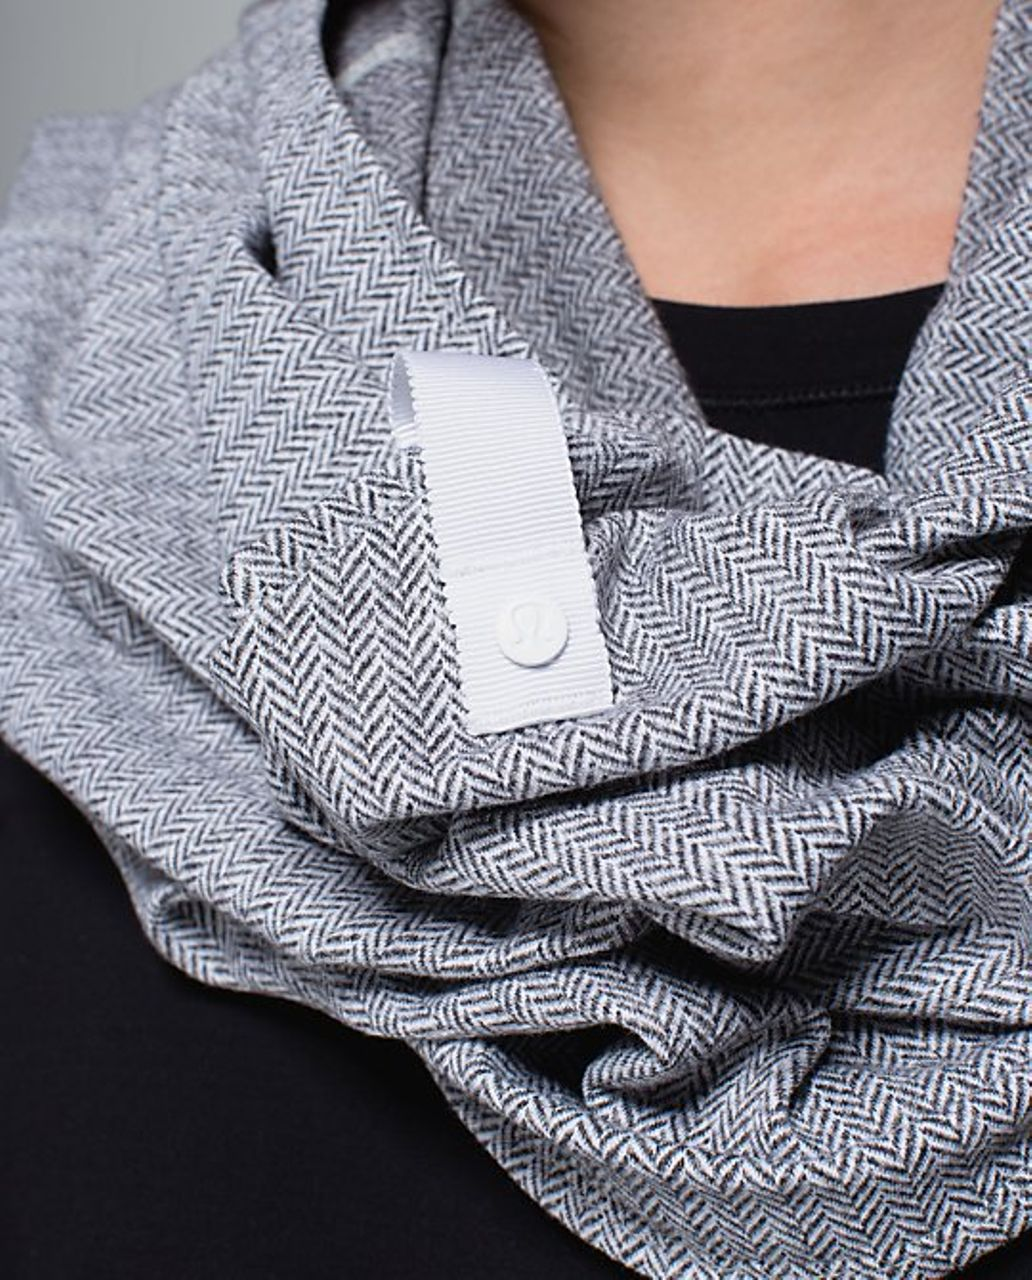 Lululemon Vinyasa Scarf - Ghost Herringbone (Second Release)